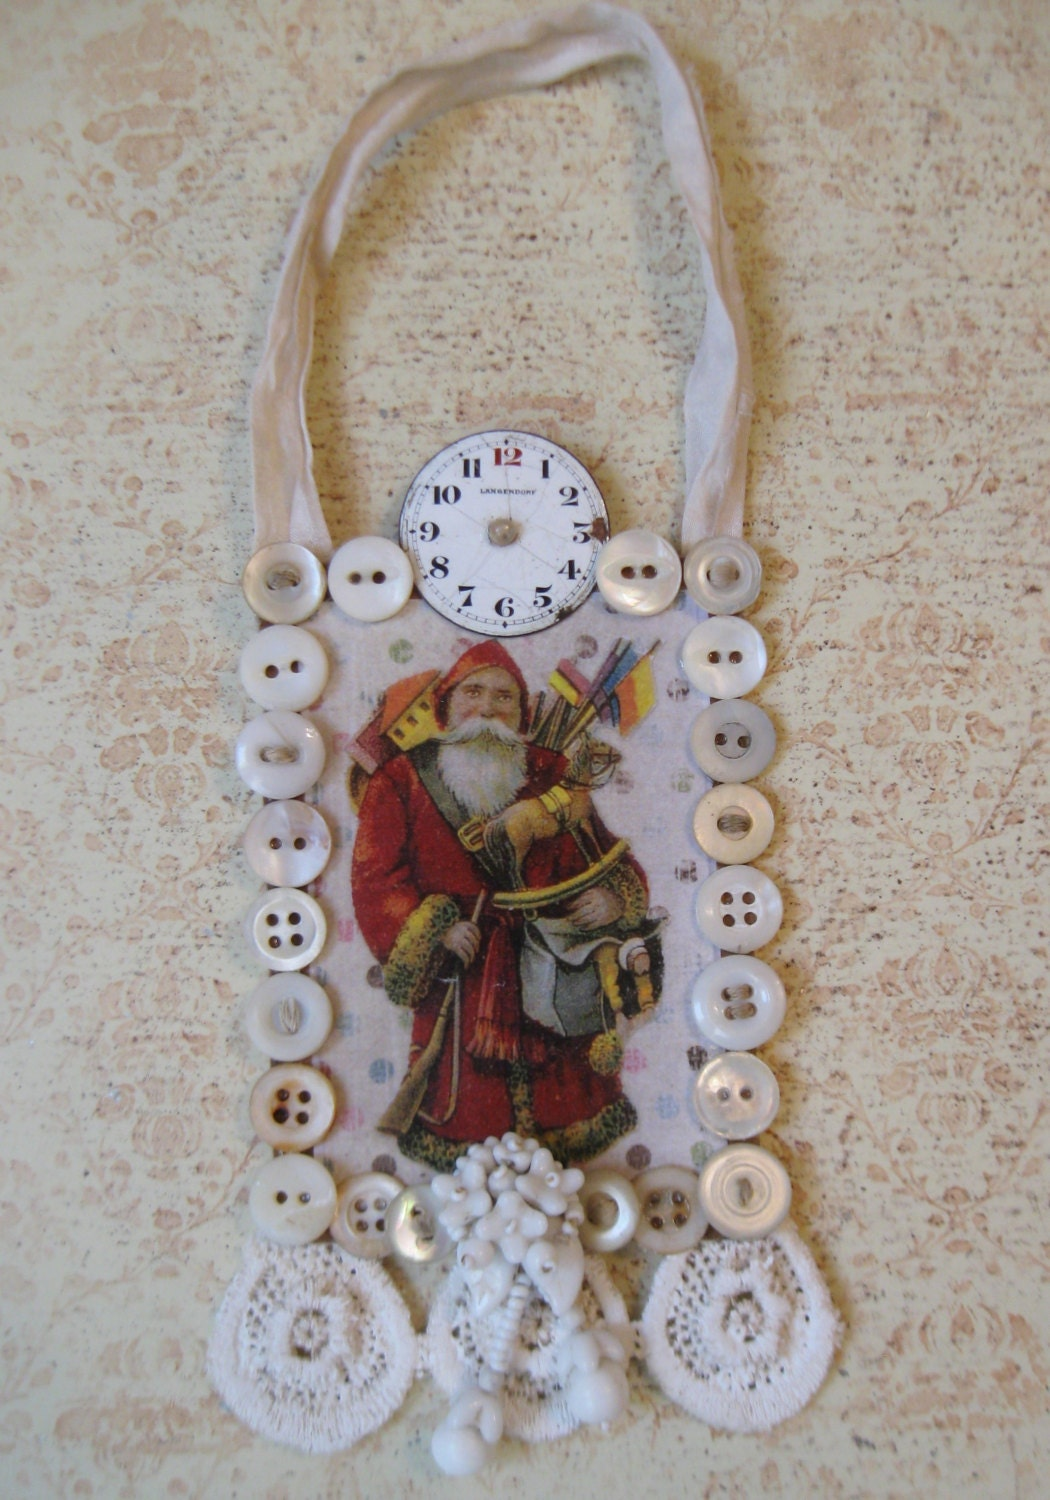 Winter White Vintage Christmas Decoration Santa Father Christmas Shabby Chic Handmade Holiday OOAK Assemblage Repurposed Vintage Nordic